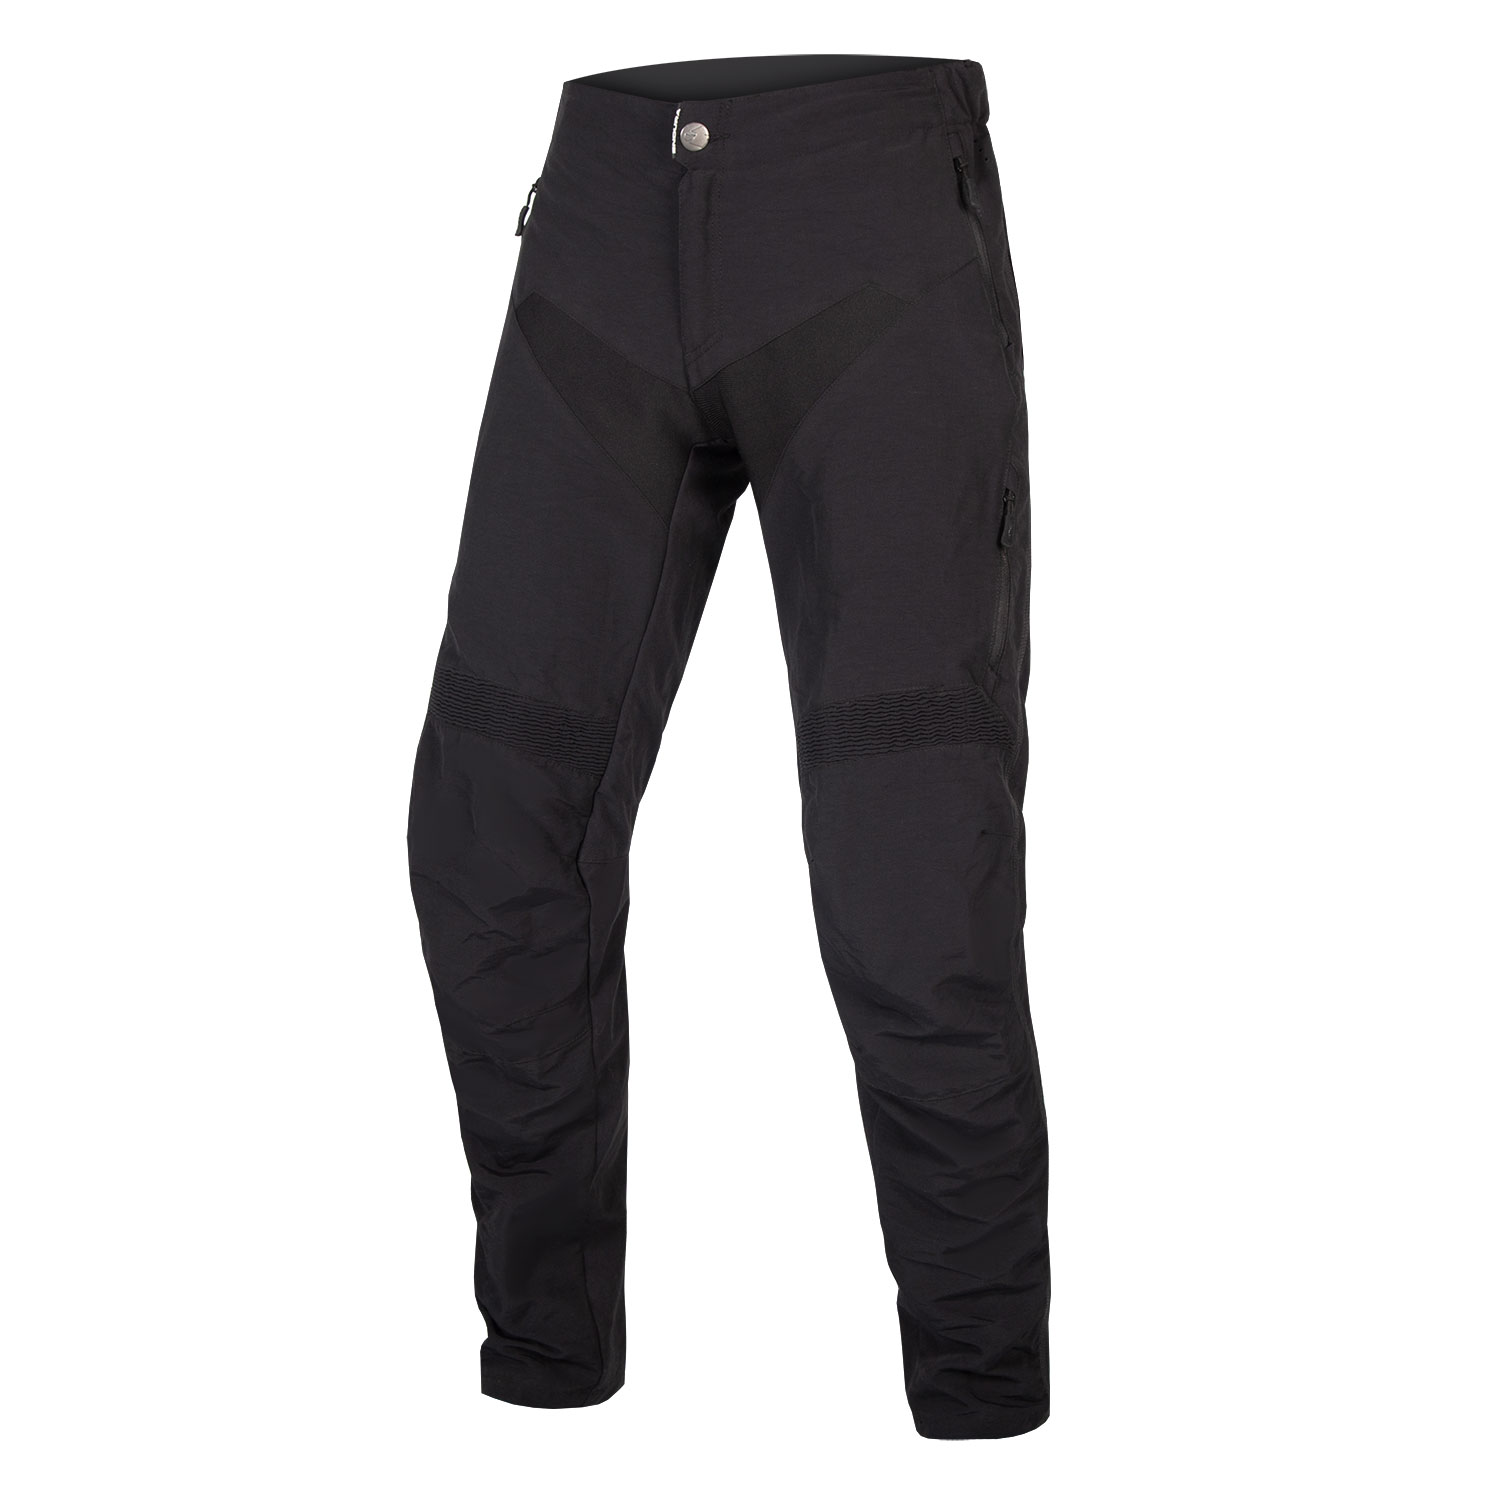 SingleTrack Trouser | Rugged MTB Trail Pant